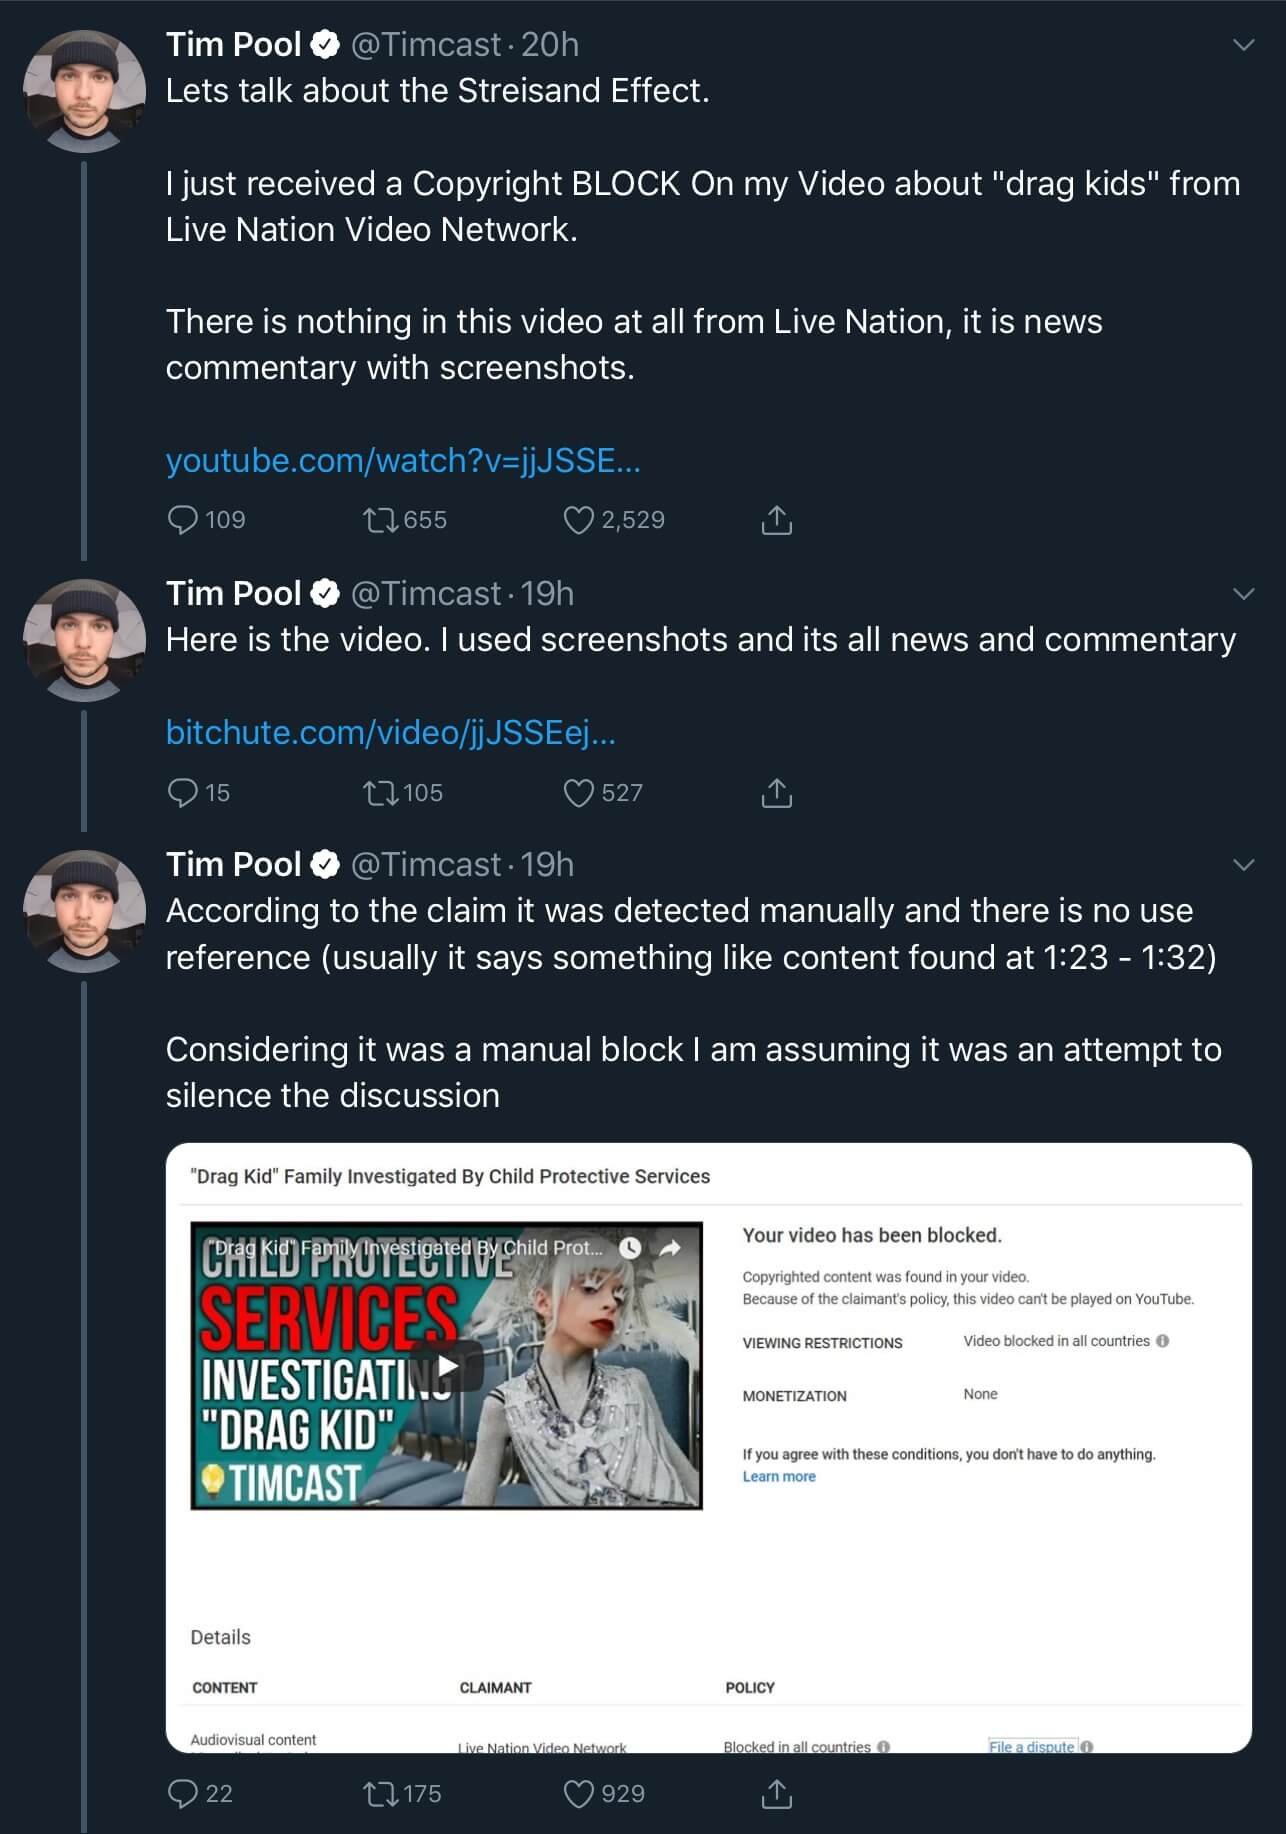 A tweet thread from Tim Pool showing the fake copyright claim from Live Nation Video Network for his video about Desmond The Drag Kid.